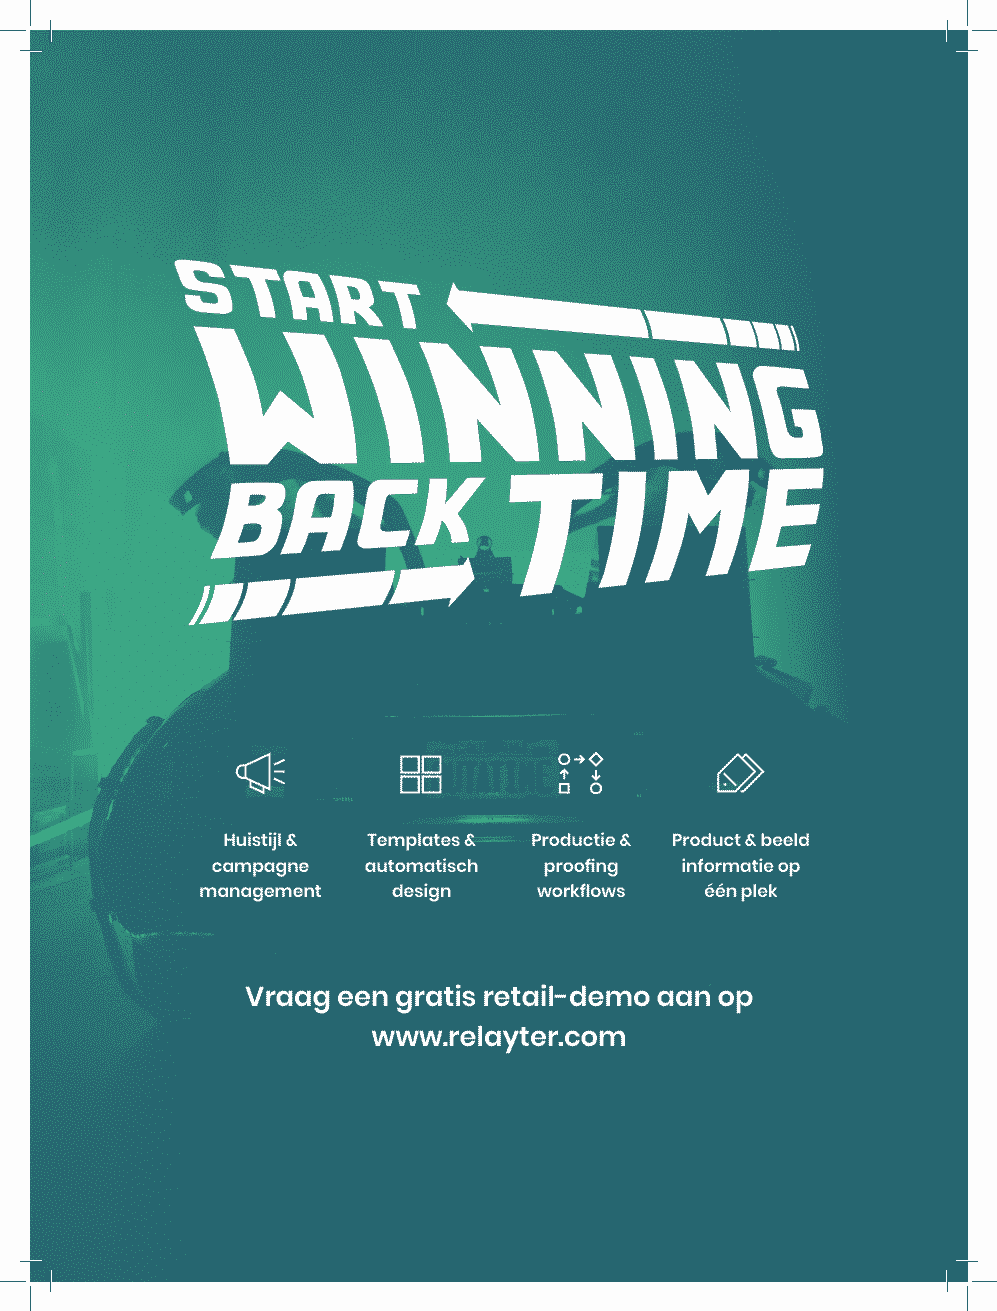 Relayter Win Back Time Campagne Flyer